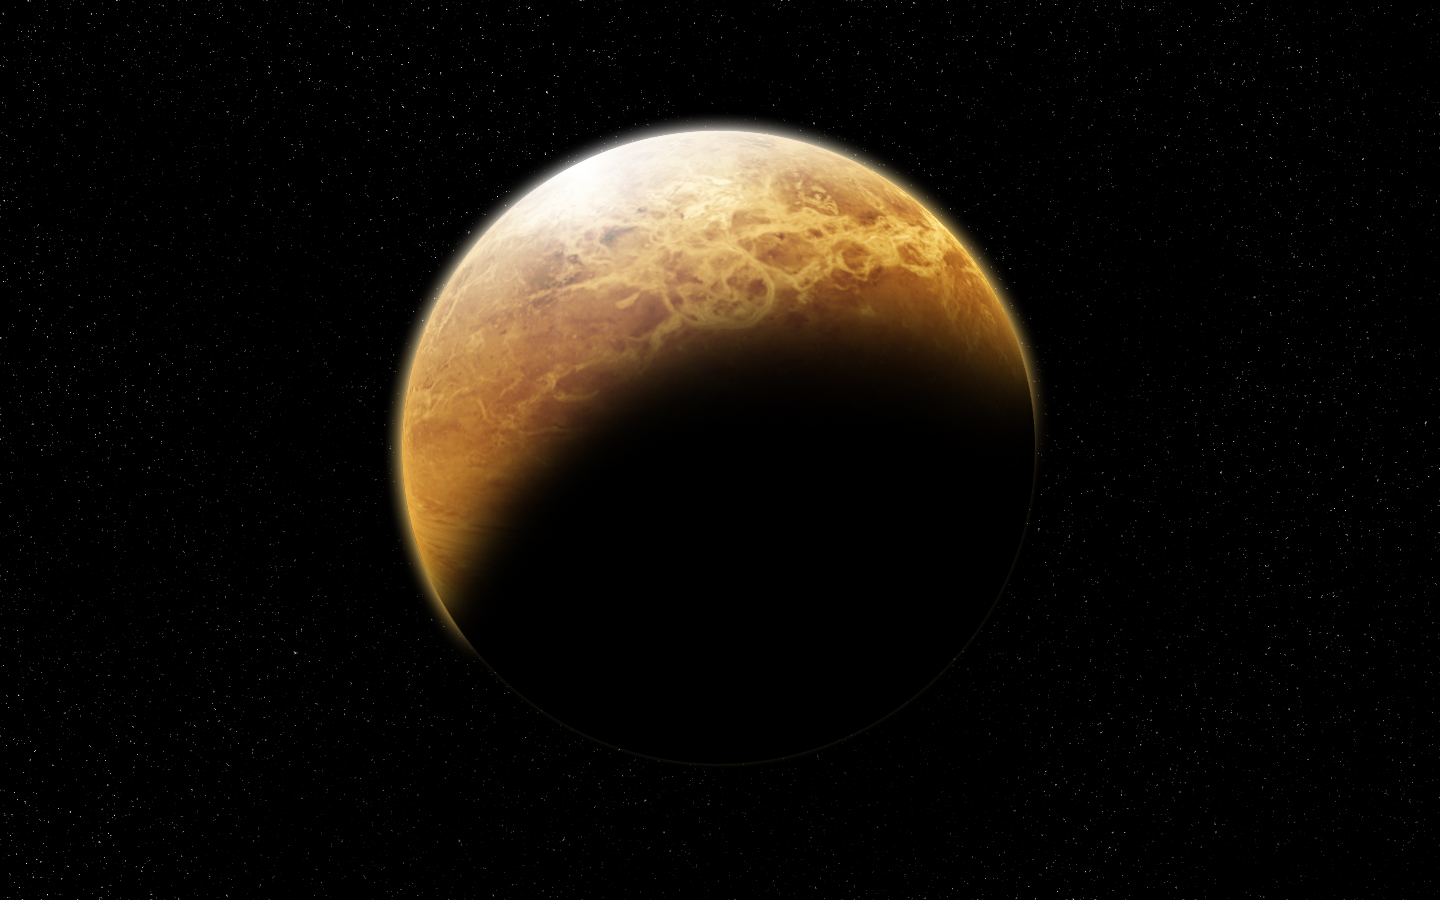 Planet Venus by Basicnewb Planet Venus by Basicnewb